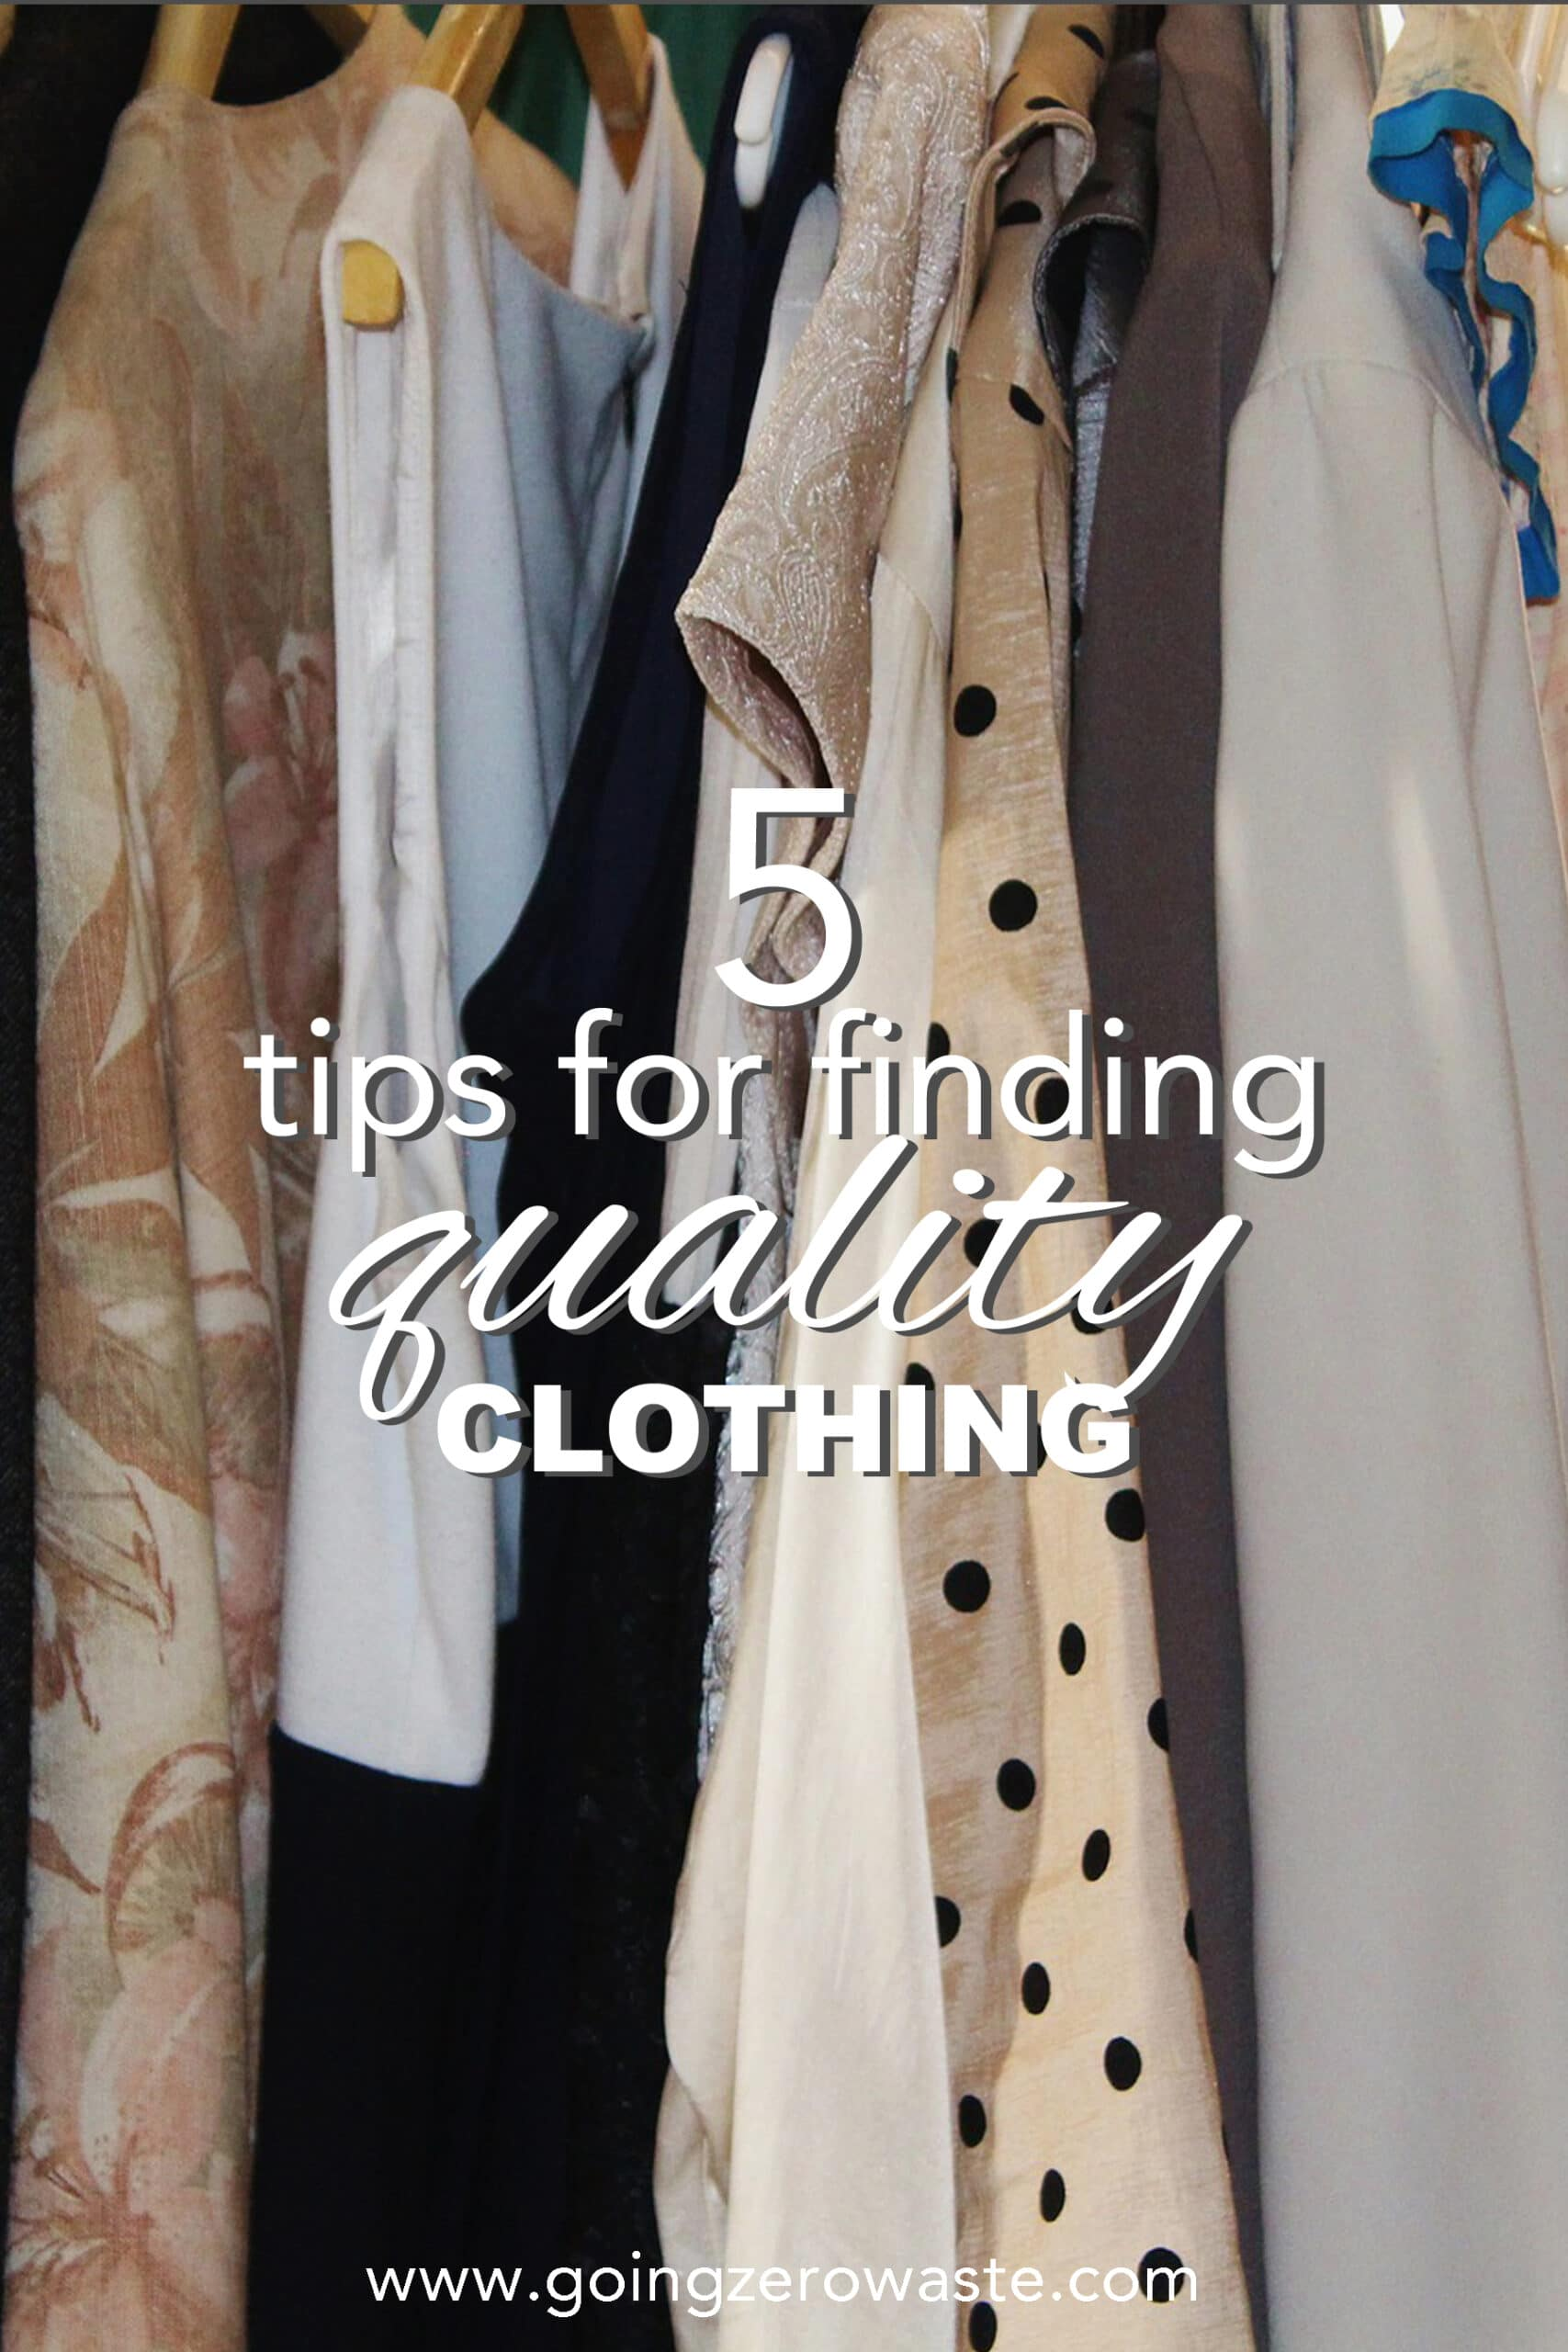 5 Tips for Finding Quality Clothing from www.goingzerowaste.com #zerowaste #ecofriendly #gogreen #sustainable #clothing #qualityclothing #secondhandshopping #howtospotquality